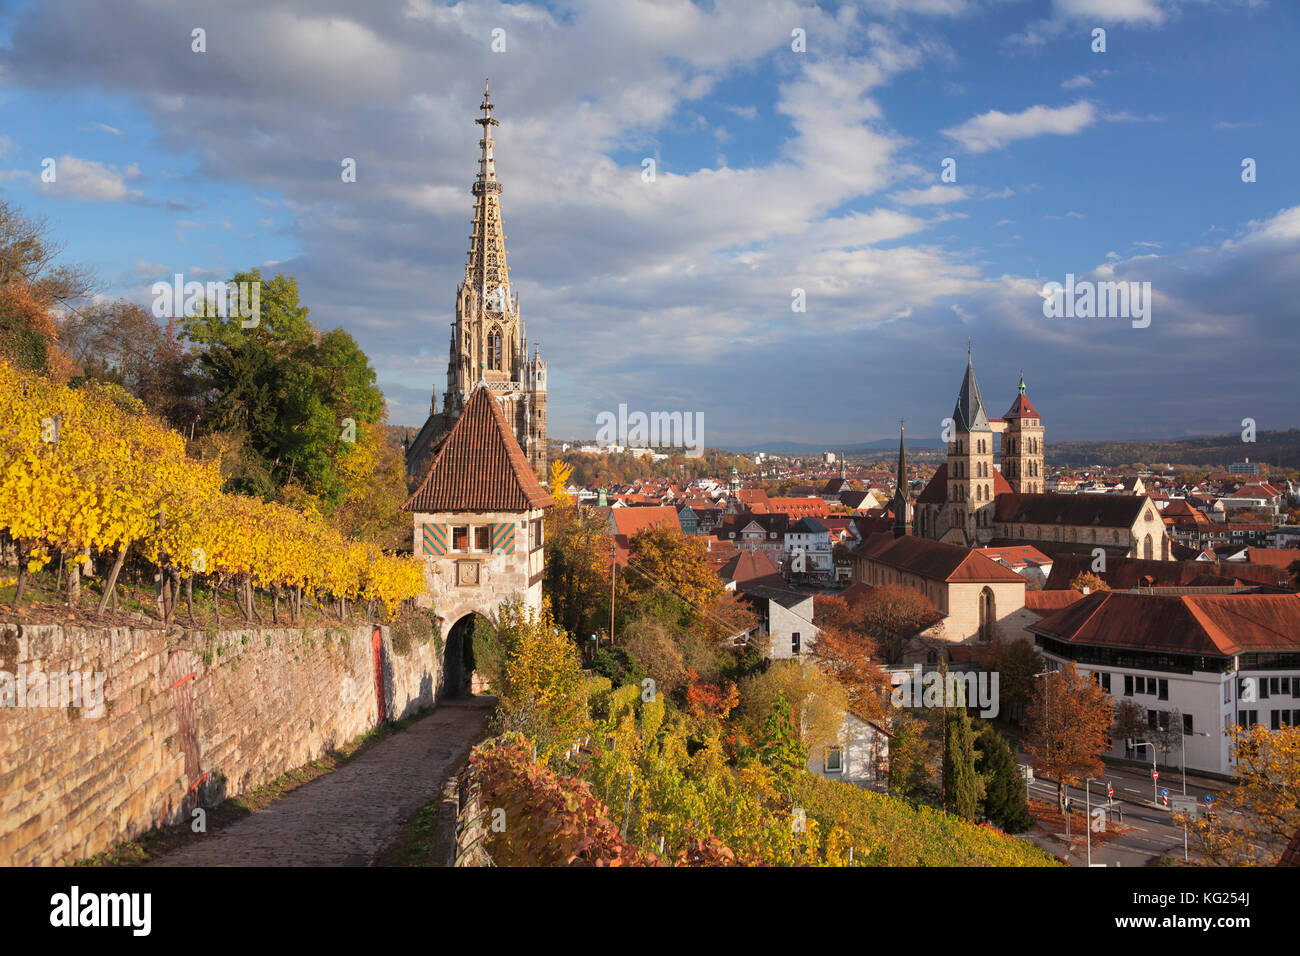 View from vineyards to Esslingen with St. Dionys church and Frauenkirche church, Esslingen, Baden-Wurttemberg, Germany, - Stock Image